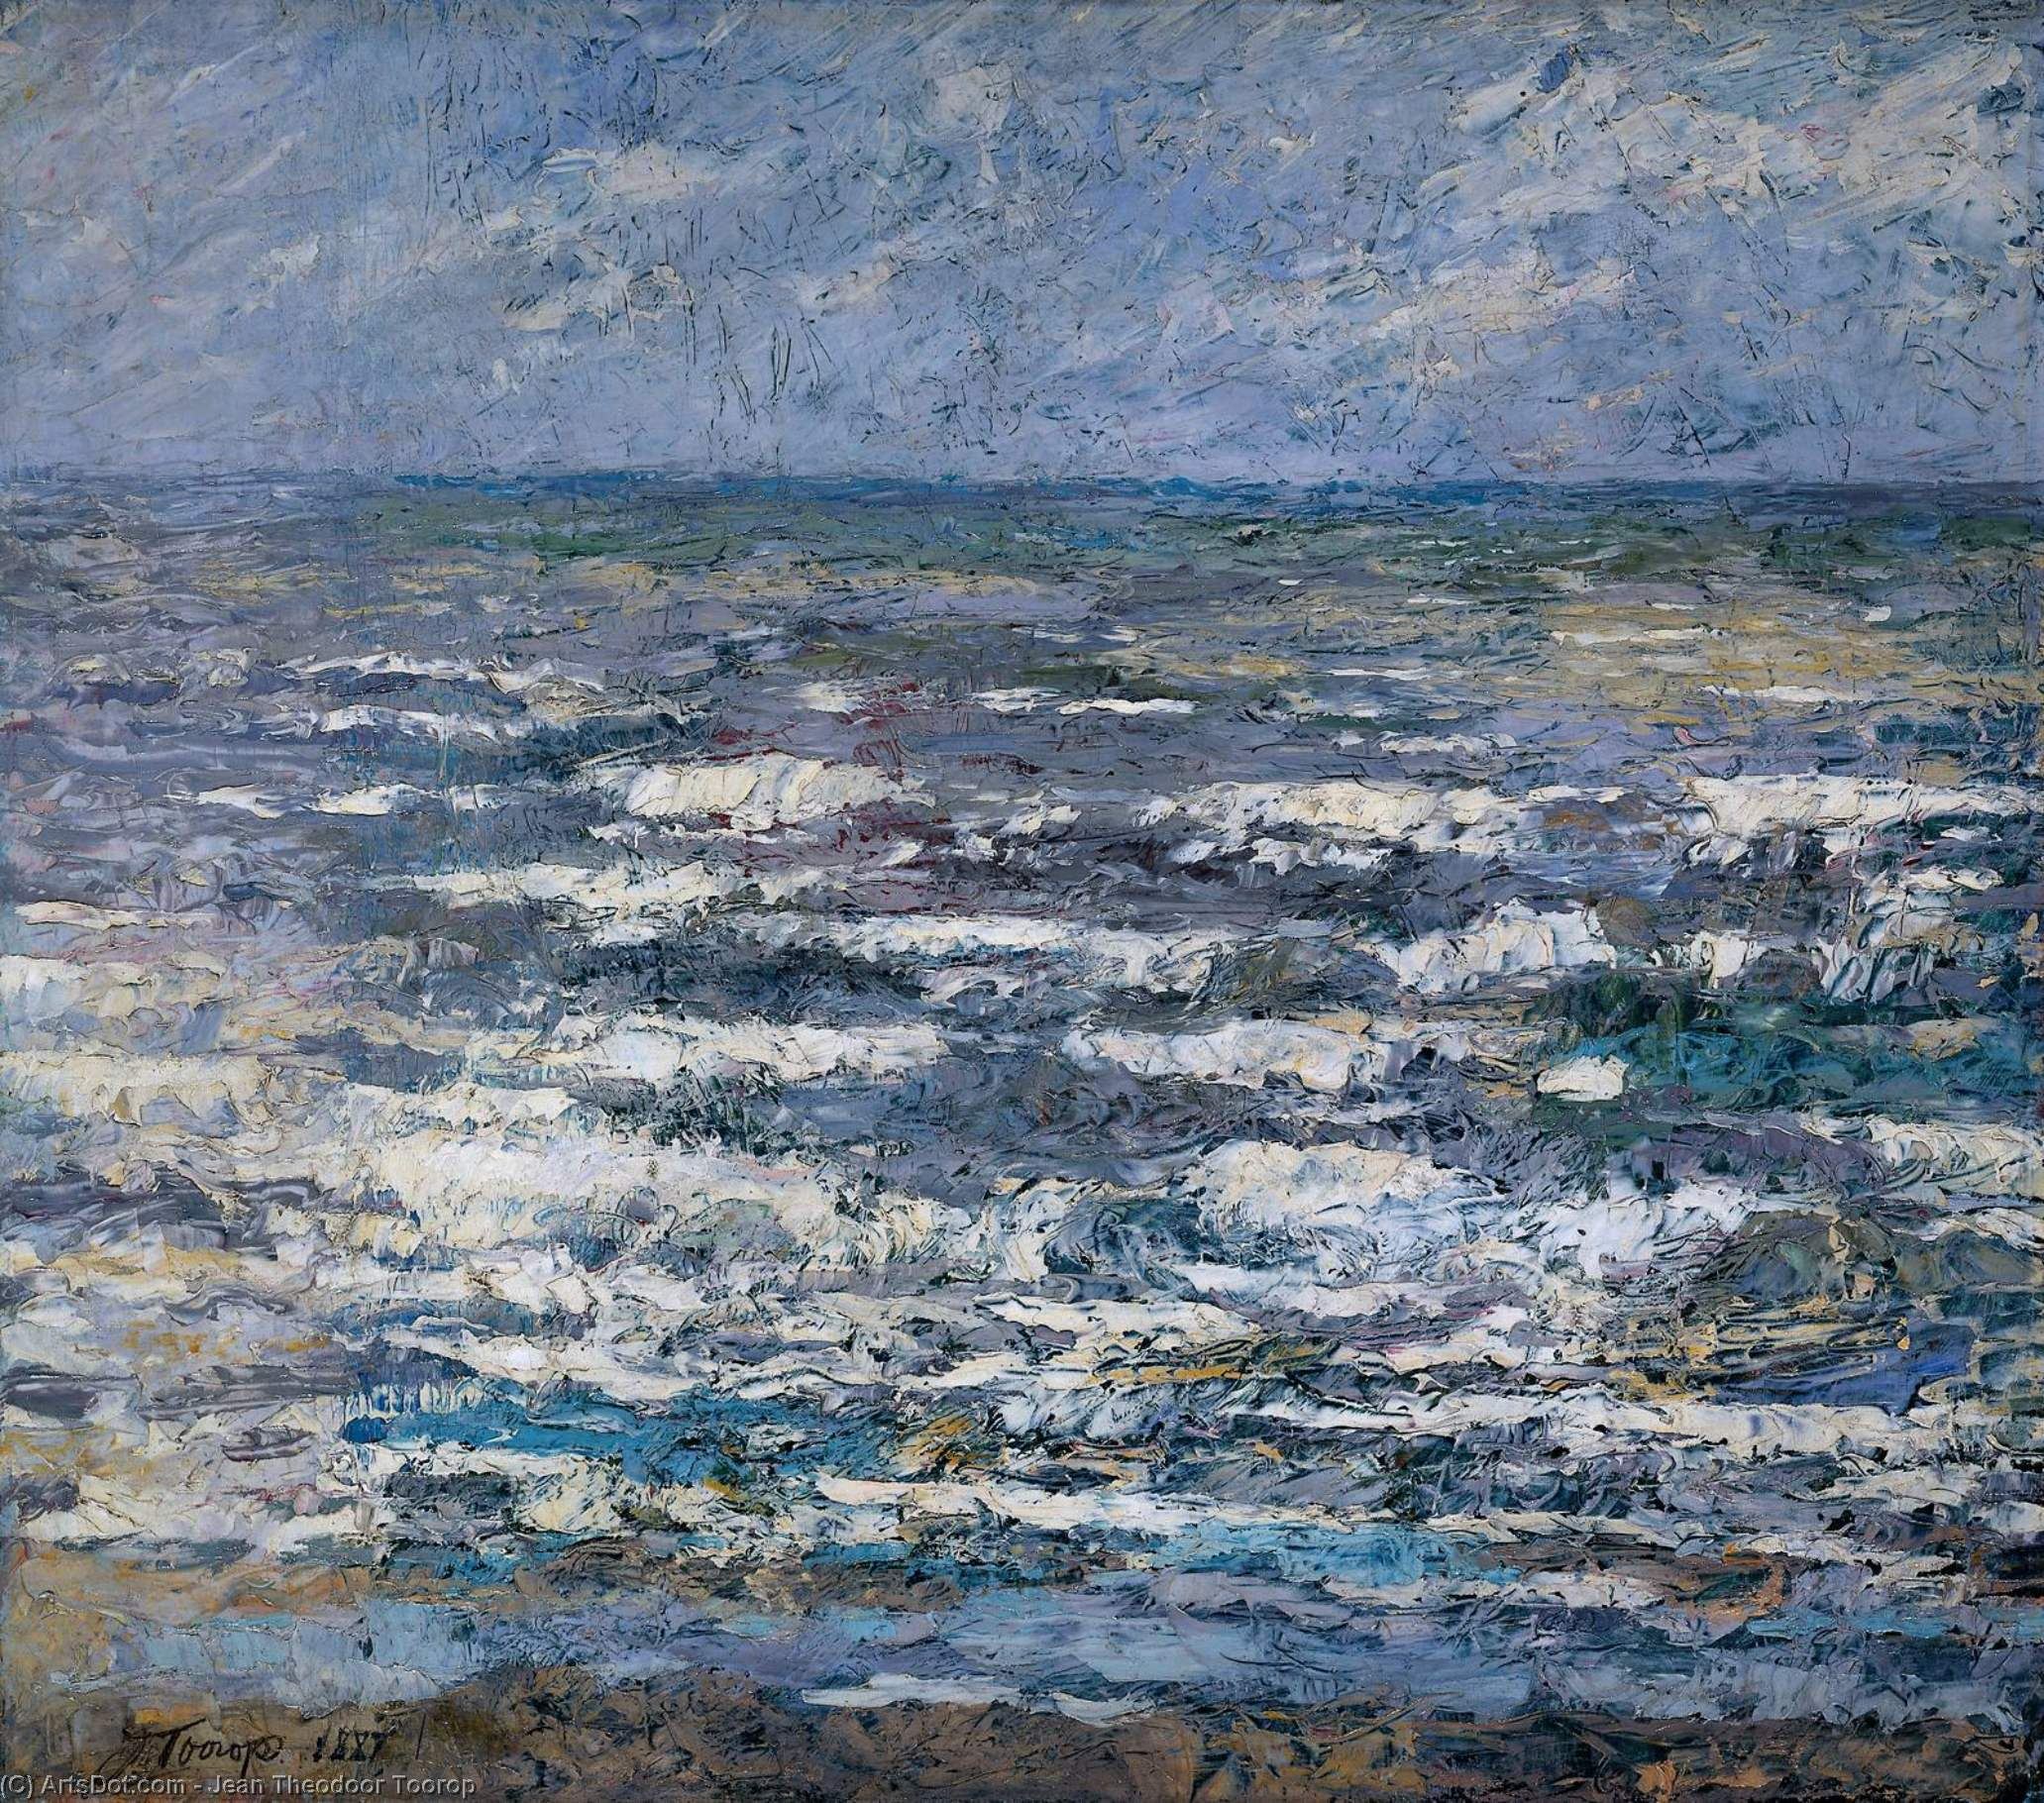 The Sea at Katwijk, Oil On Canvas by Jean Theodoor Toorop (1858-1928, Indonesia)